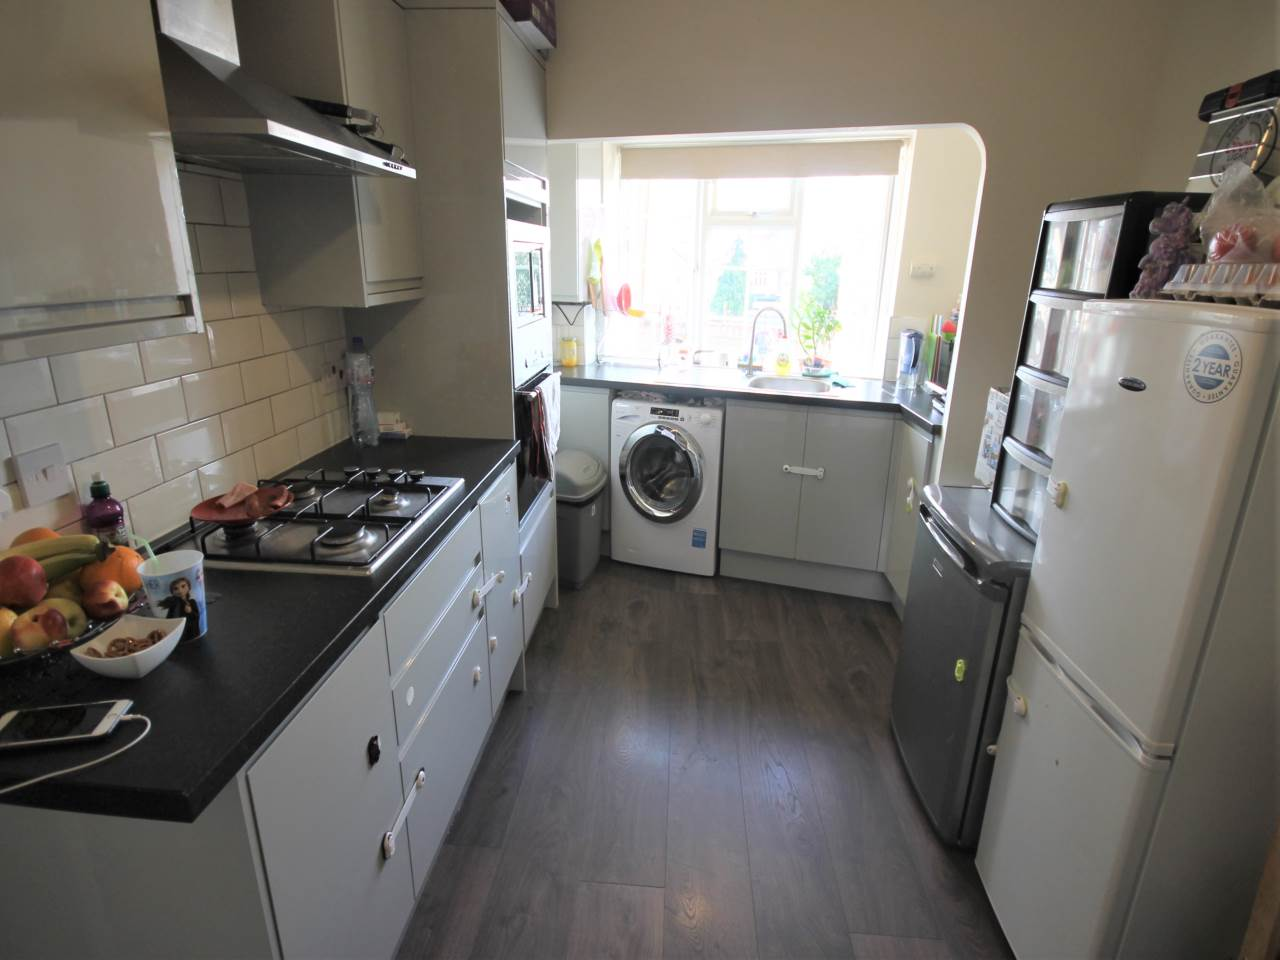 2 bed flat to rent in Chingford, E4